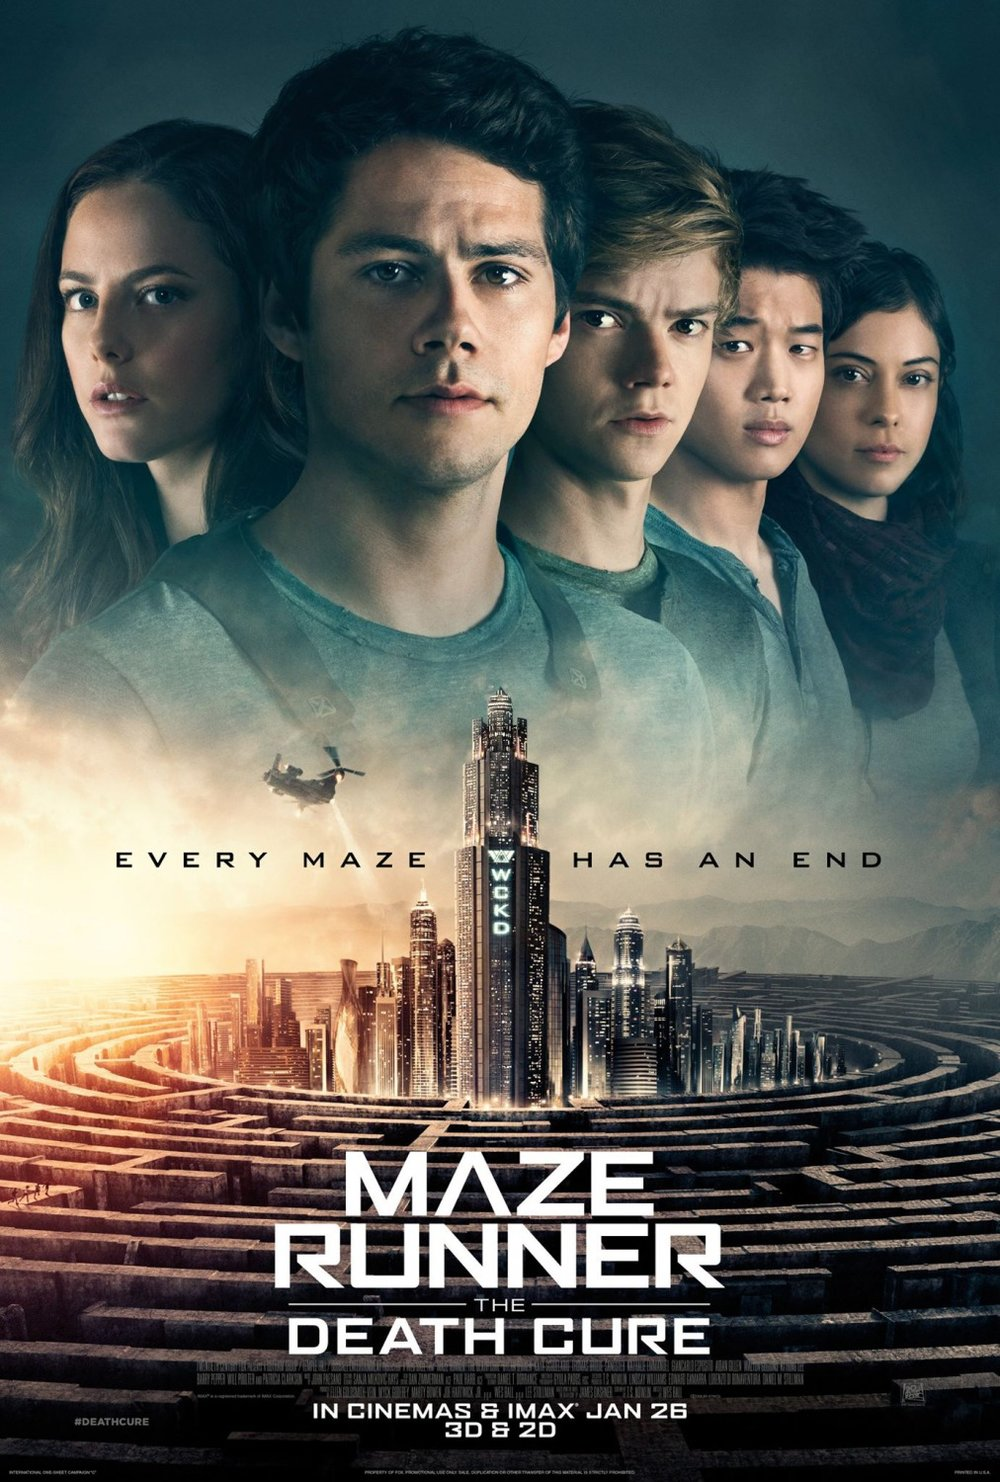 Maze Runner The Death Cure.jpg